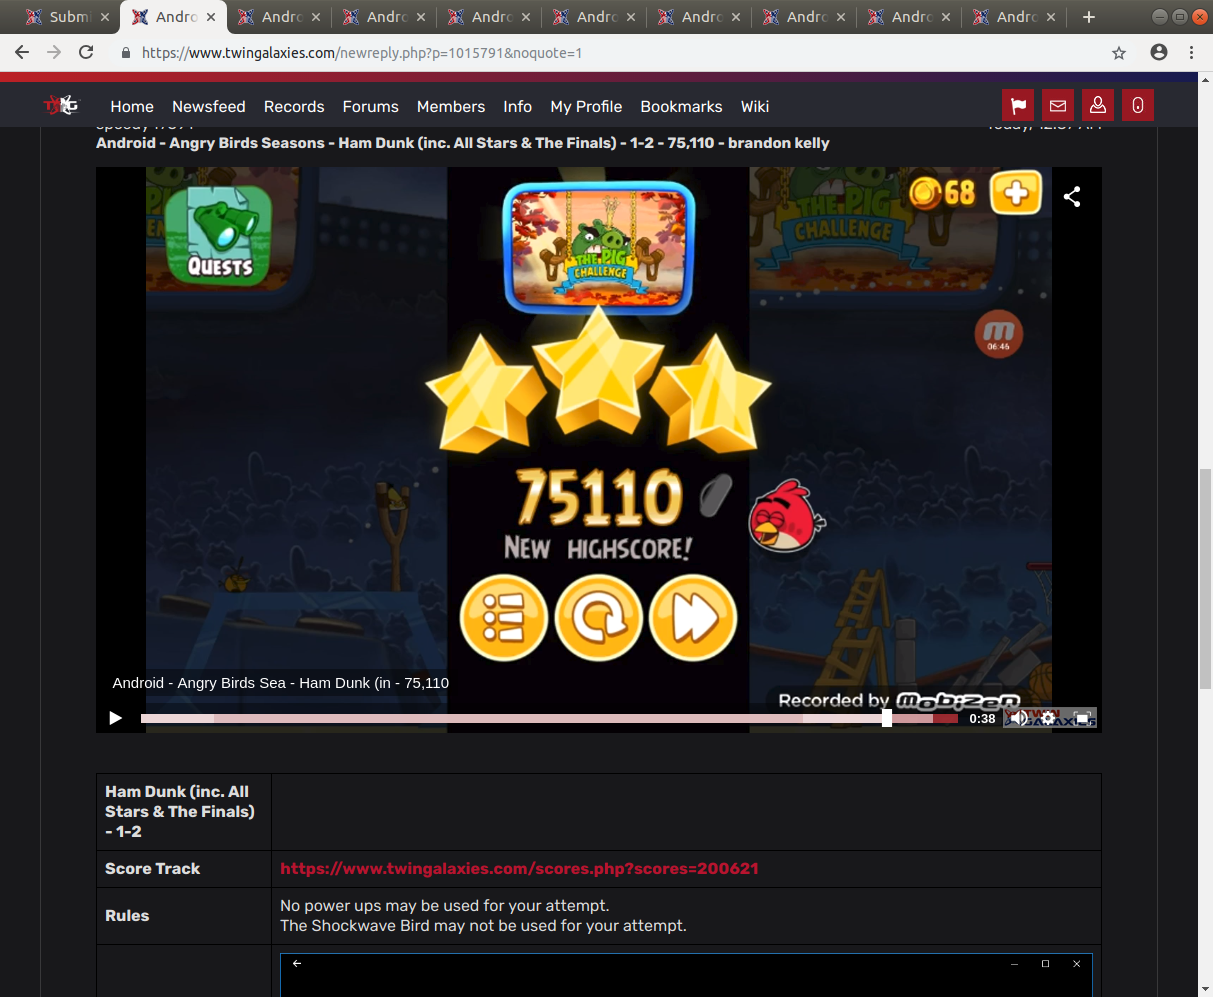 Android - Angry Birds Seasons - Ham Dunk (inc. All Stars & The Finals) -  1-2 - 75,110 - brandon kelly